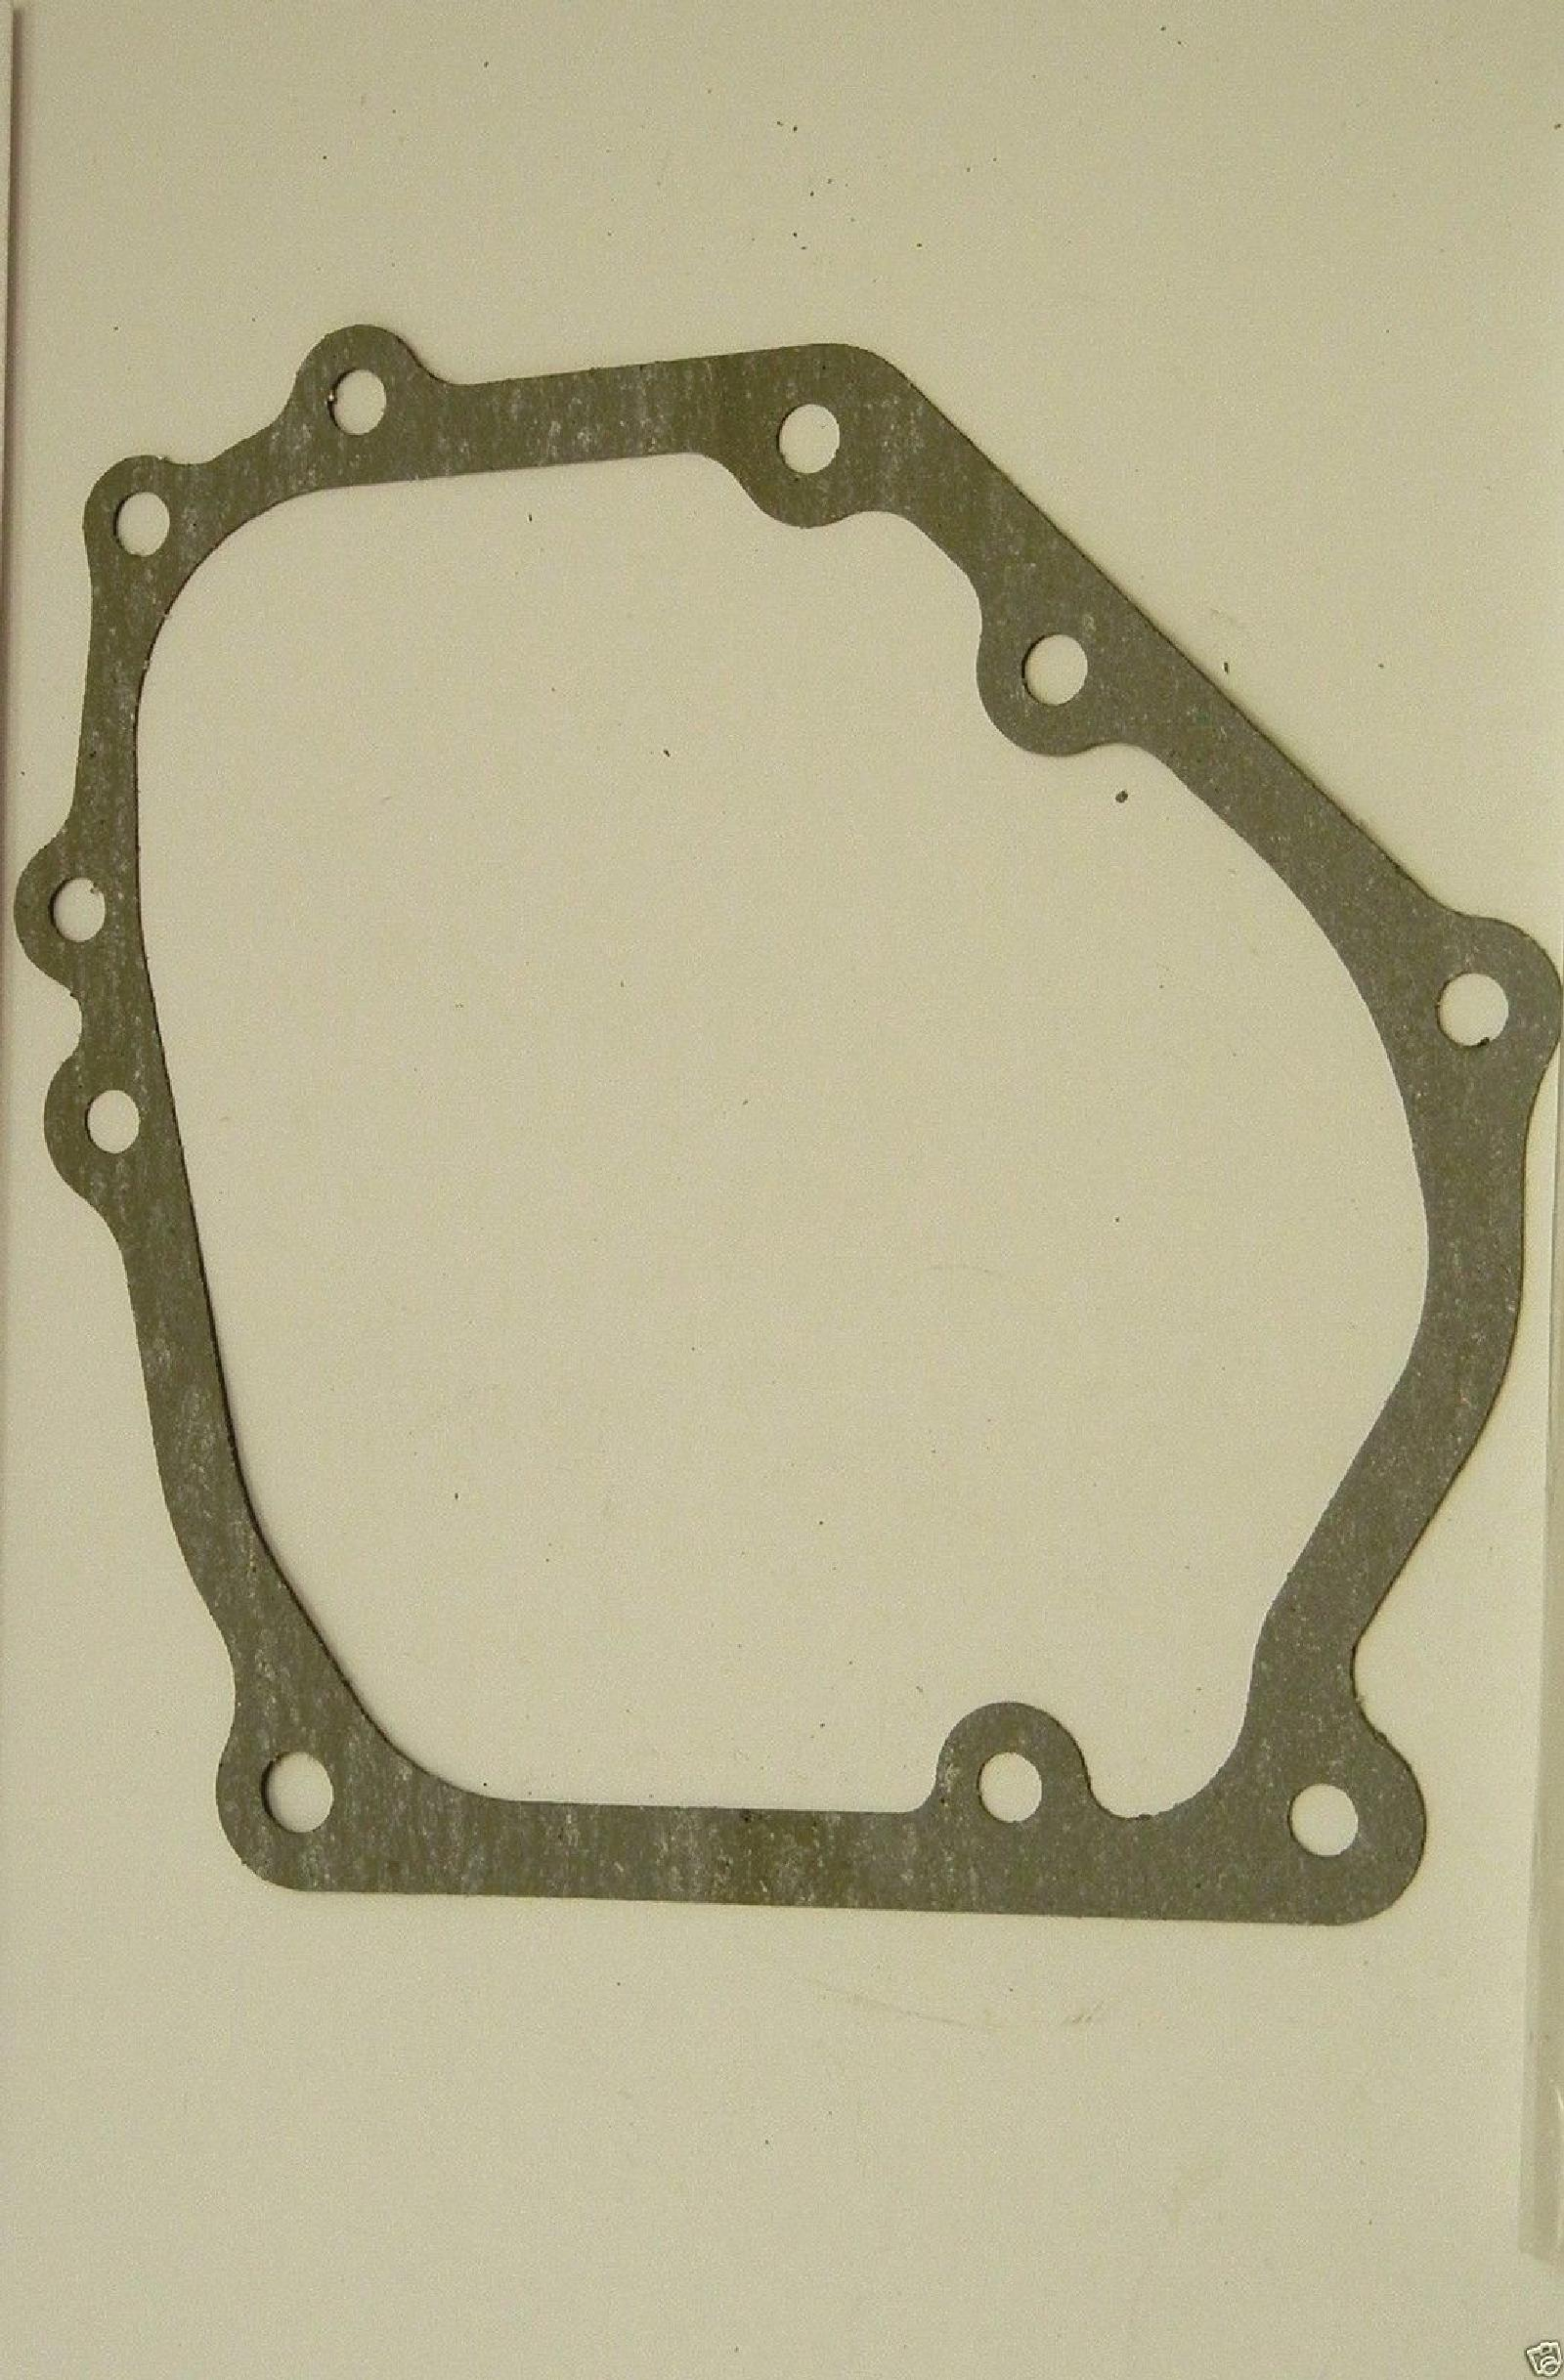 Honda GX120 4HP CRANK CASE GASKET SIDE COVER part# PF120C02 by P